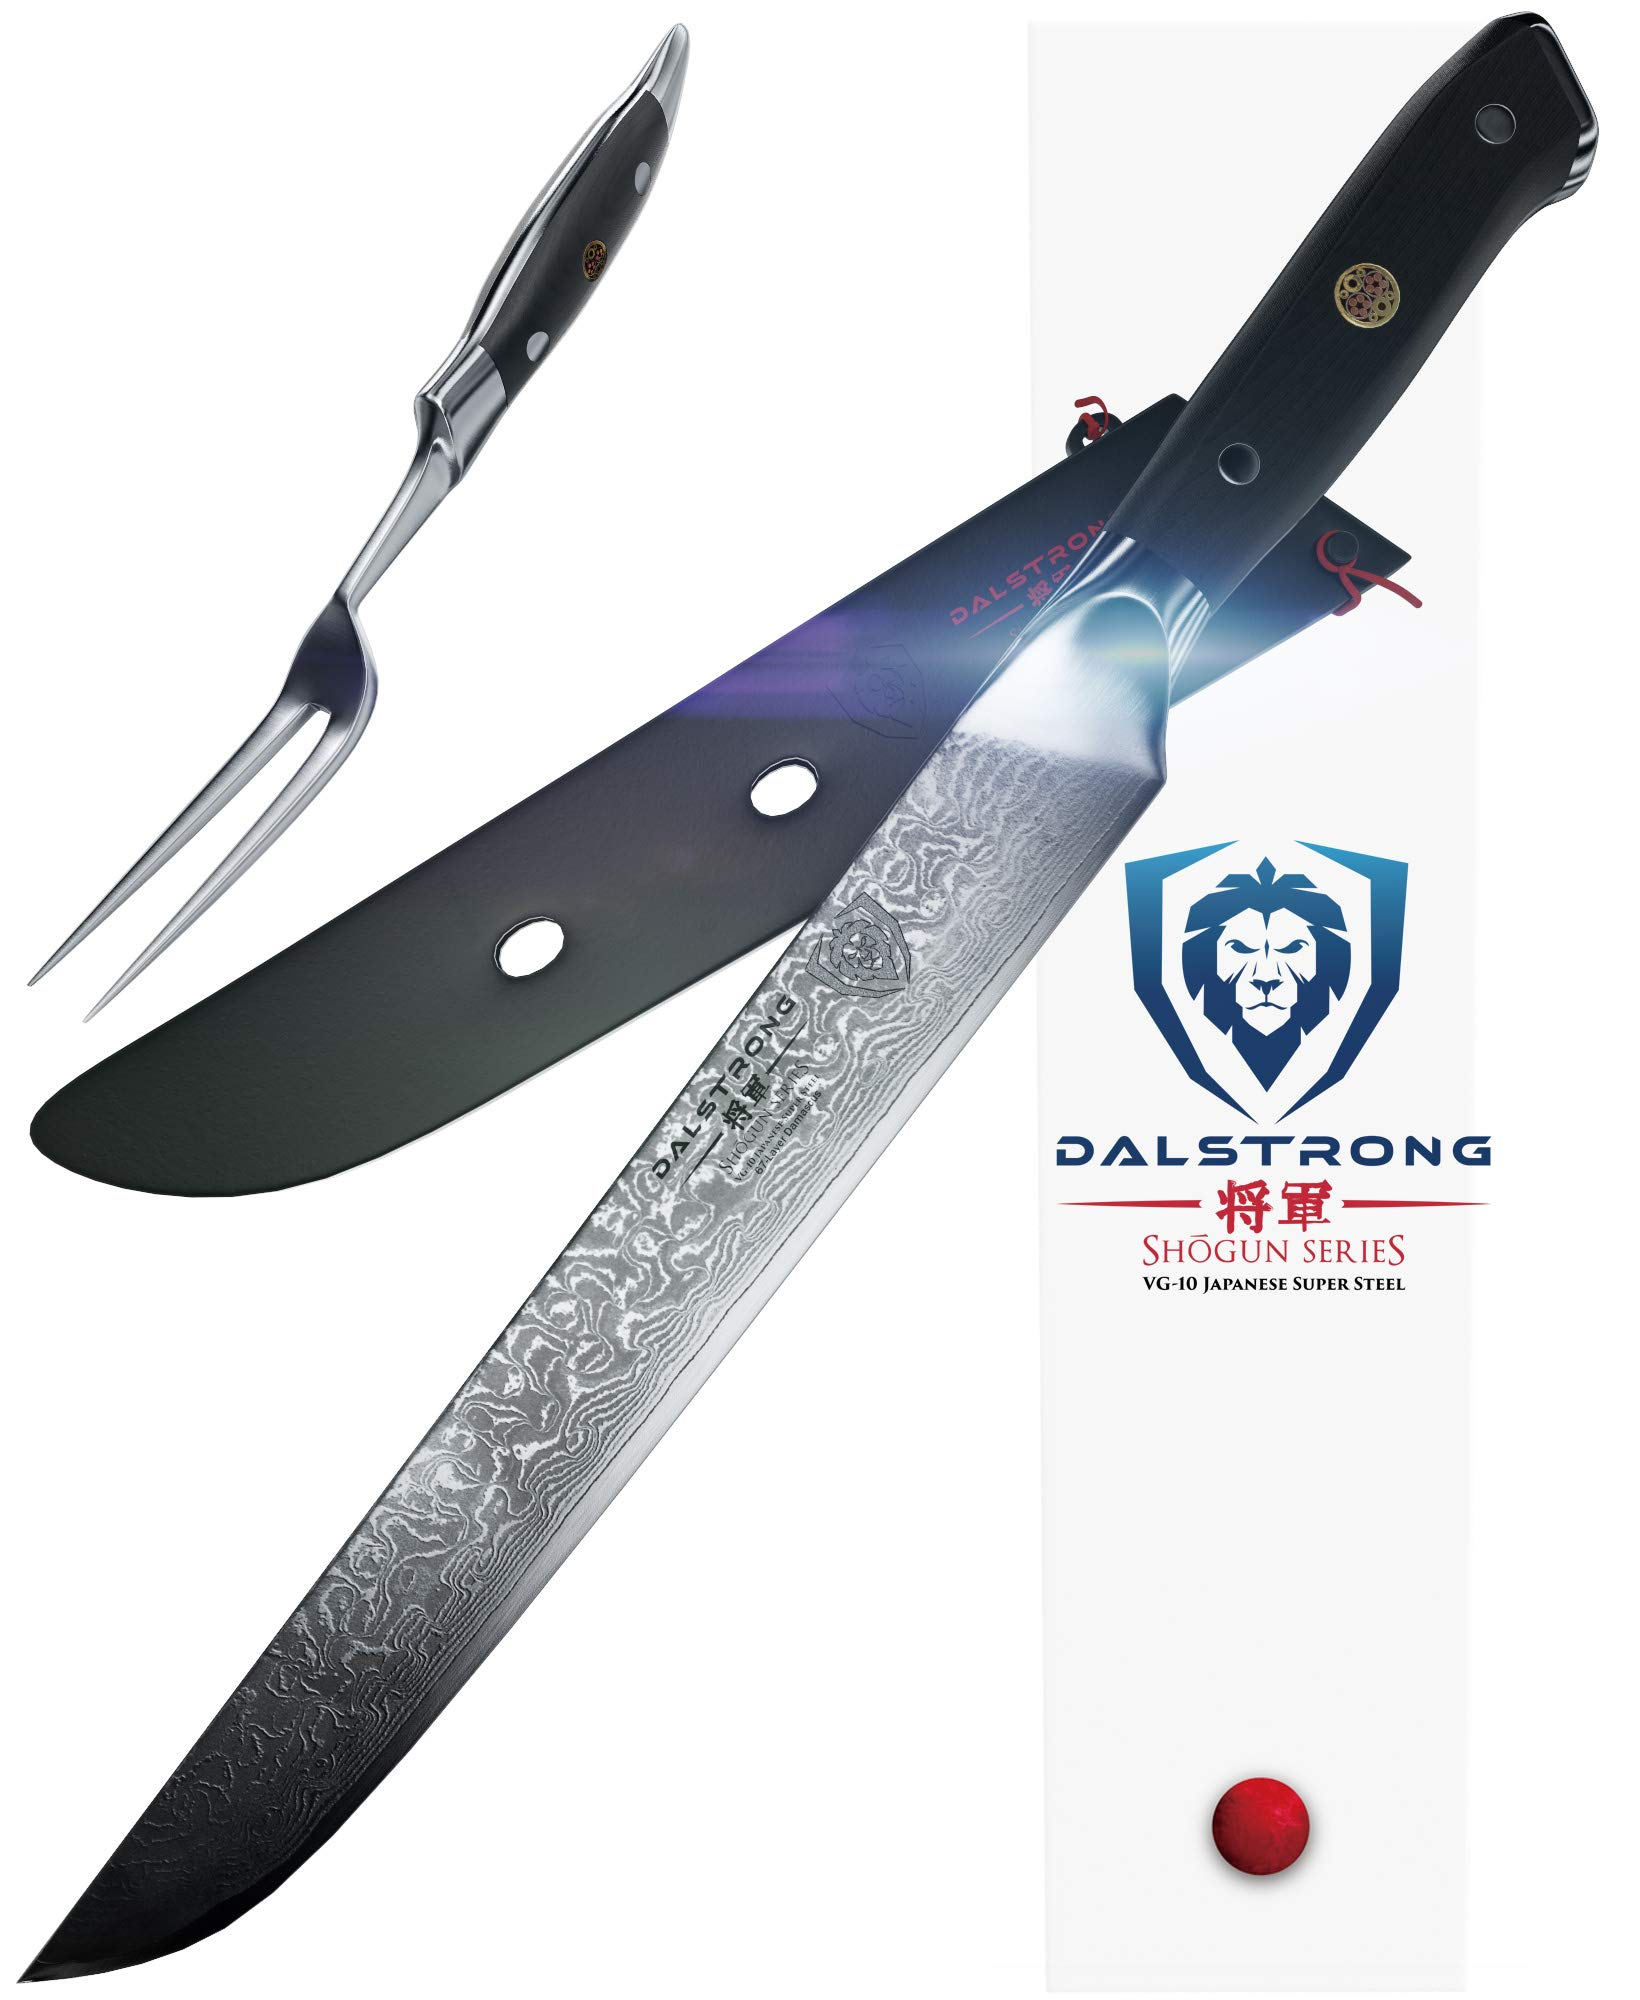 DALSTRONG Carving Knife & Fork Set - Shogun Series -9'' - AUS-10V - Sheath by Dalstrong